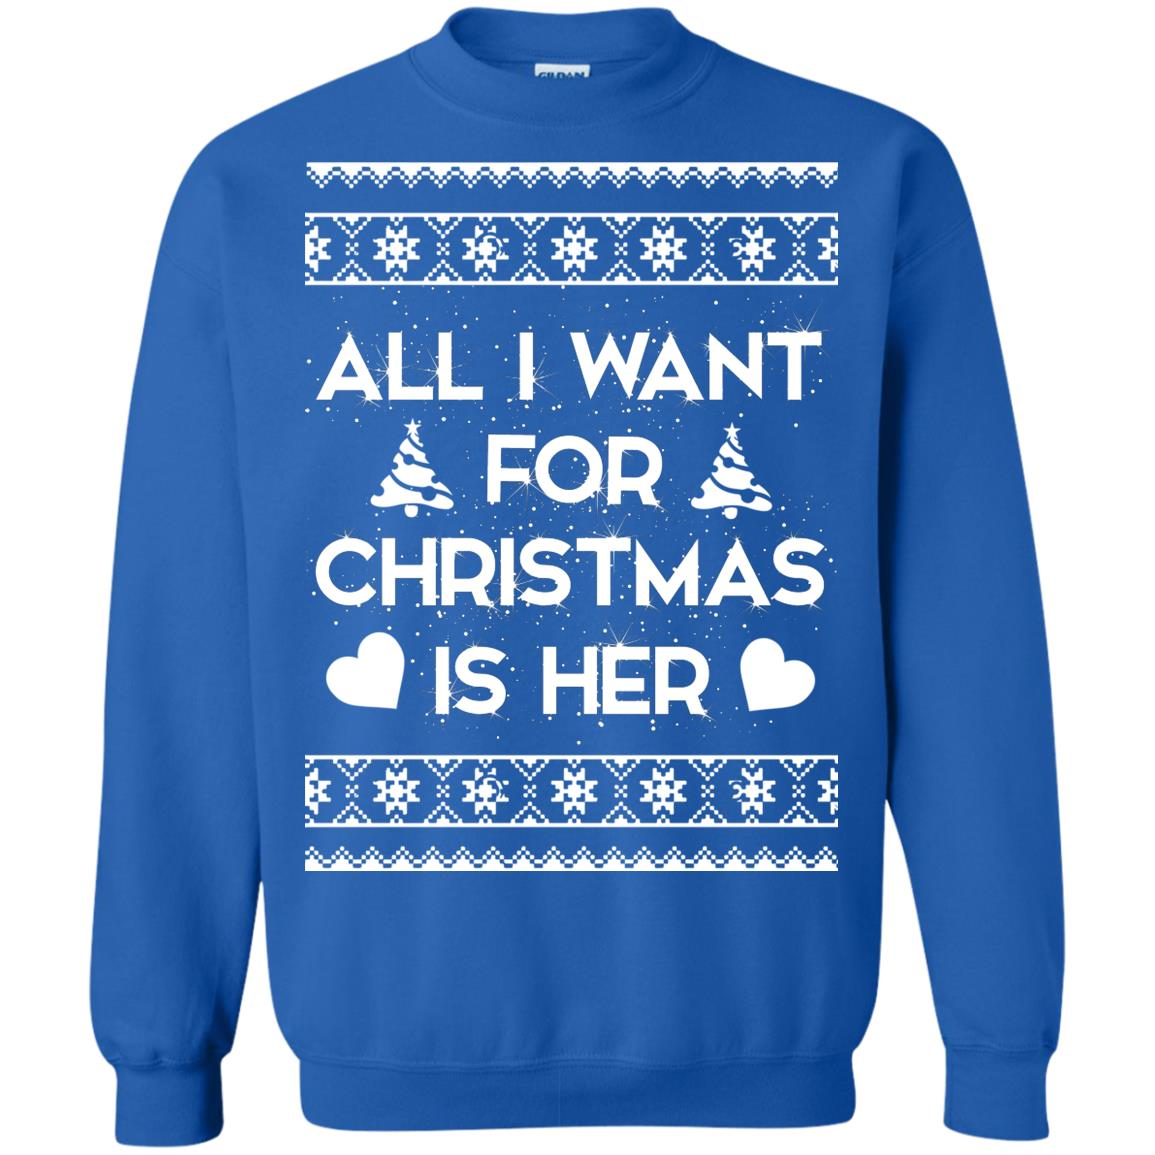 image 2393 - Couple Sweatshirt: All I Want For Christmas Is Her ugly Sweater, Shirt